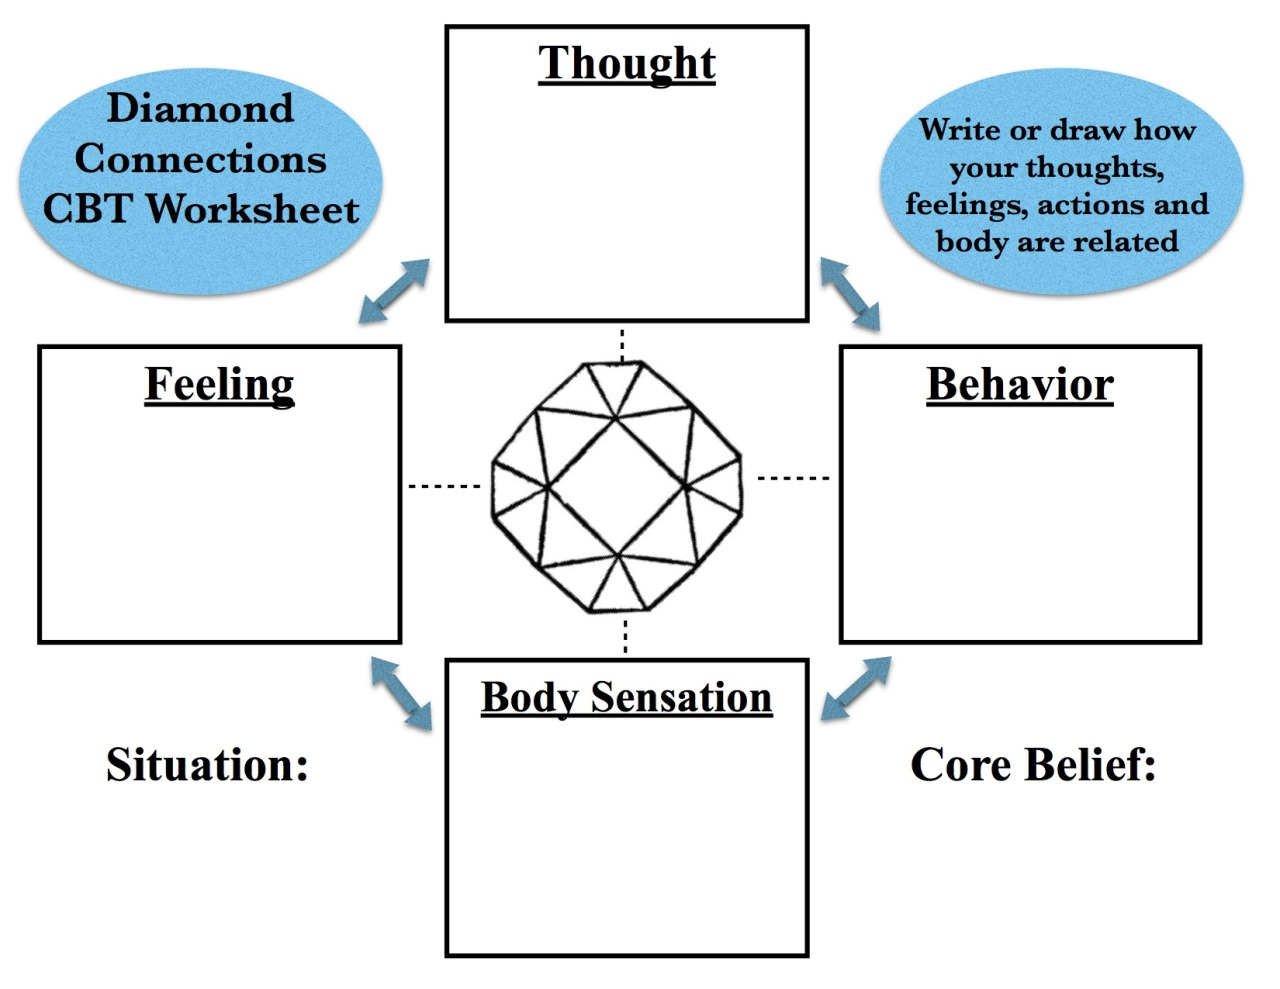 Cbt Diamond Connections Worksheet This Is